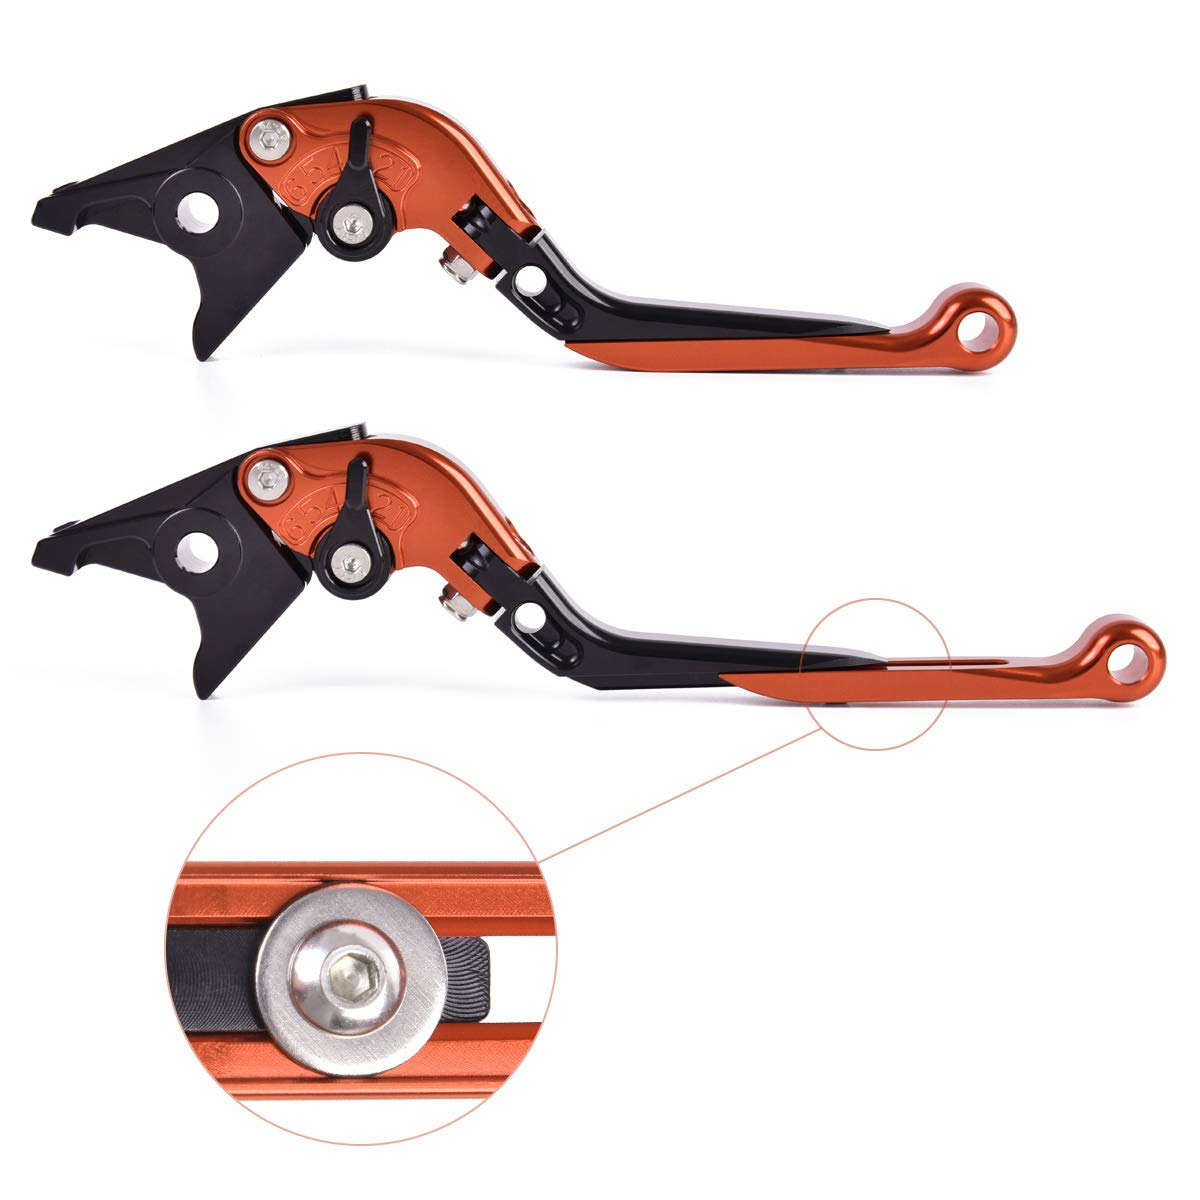 CBR954RR 2002-2003 Red Black Red Auzkong Folding Extendable Adjustable CNC Brake Clutch Levers for Honda CBR600RR 2003-2006